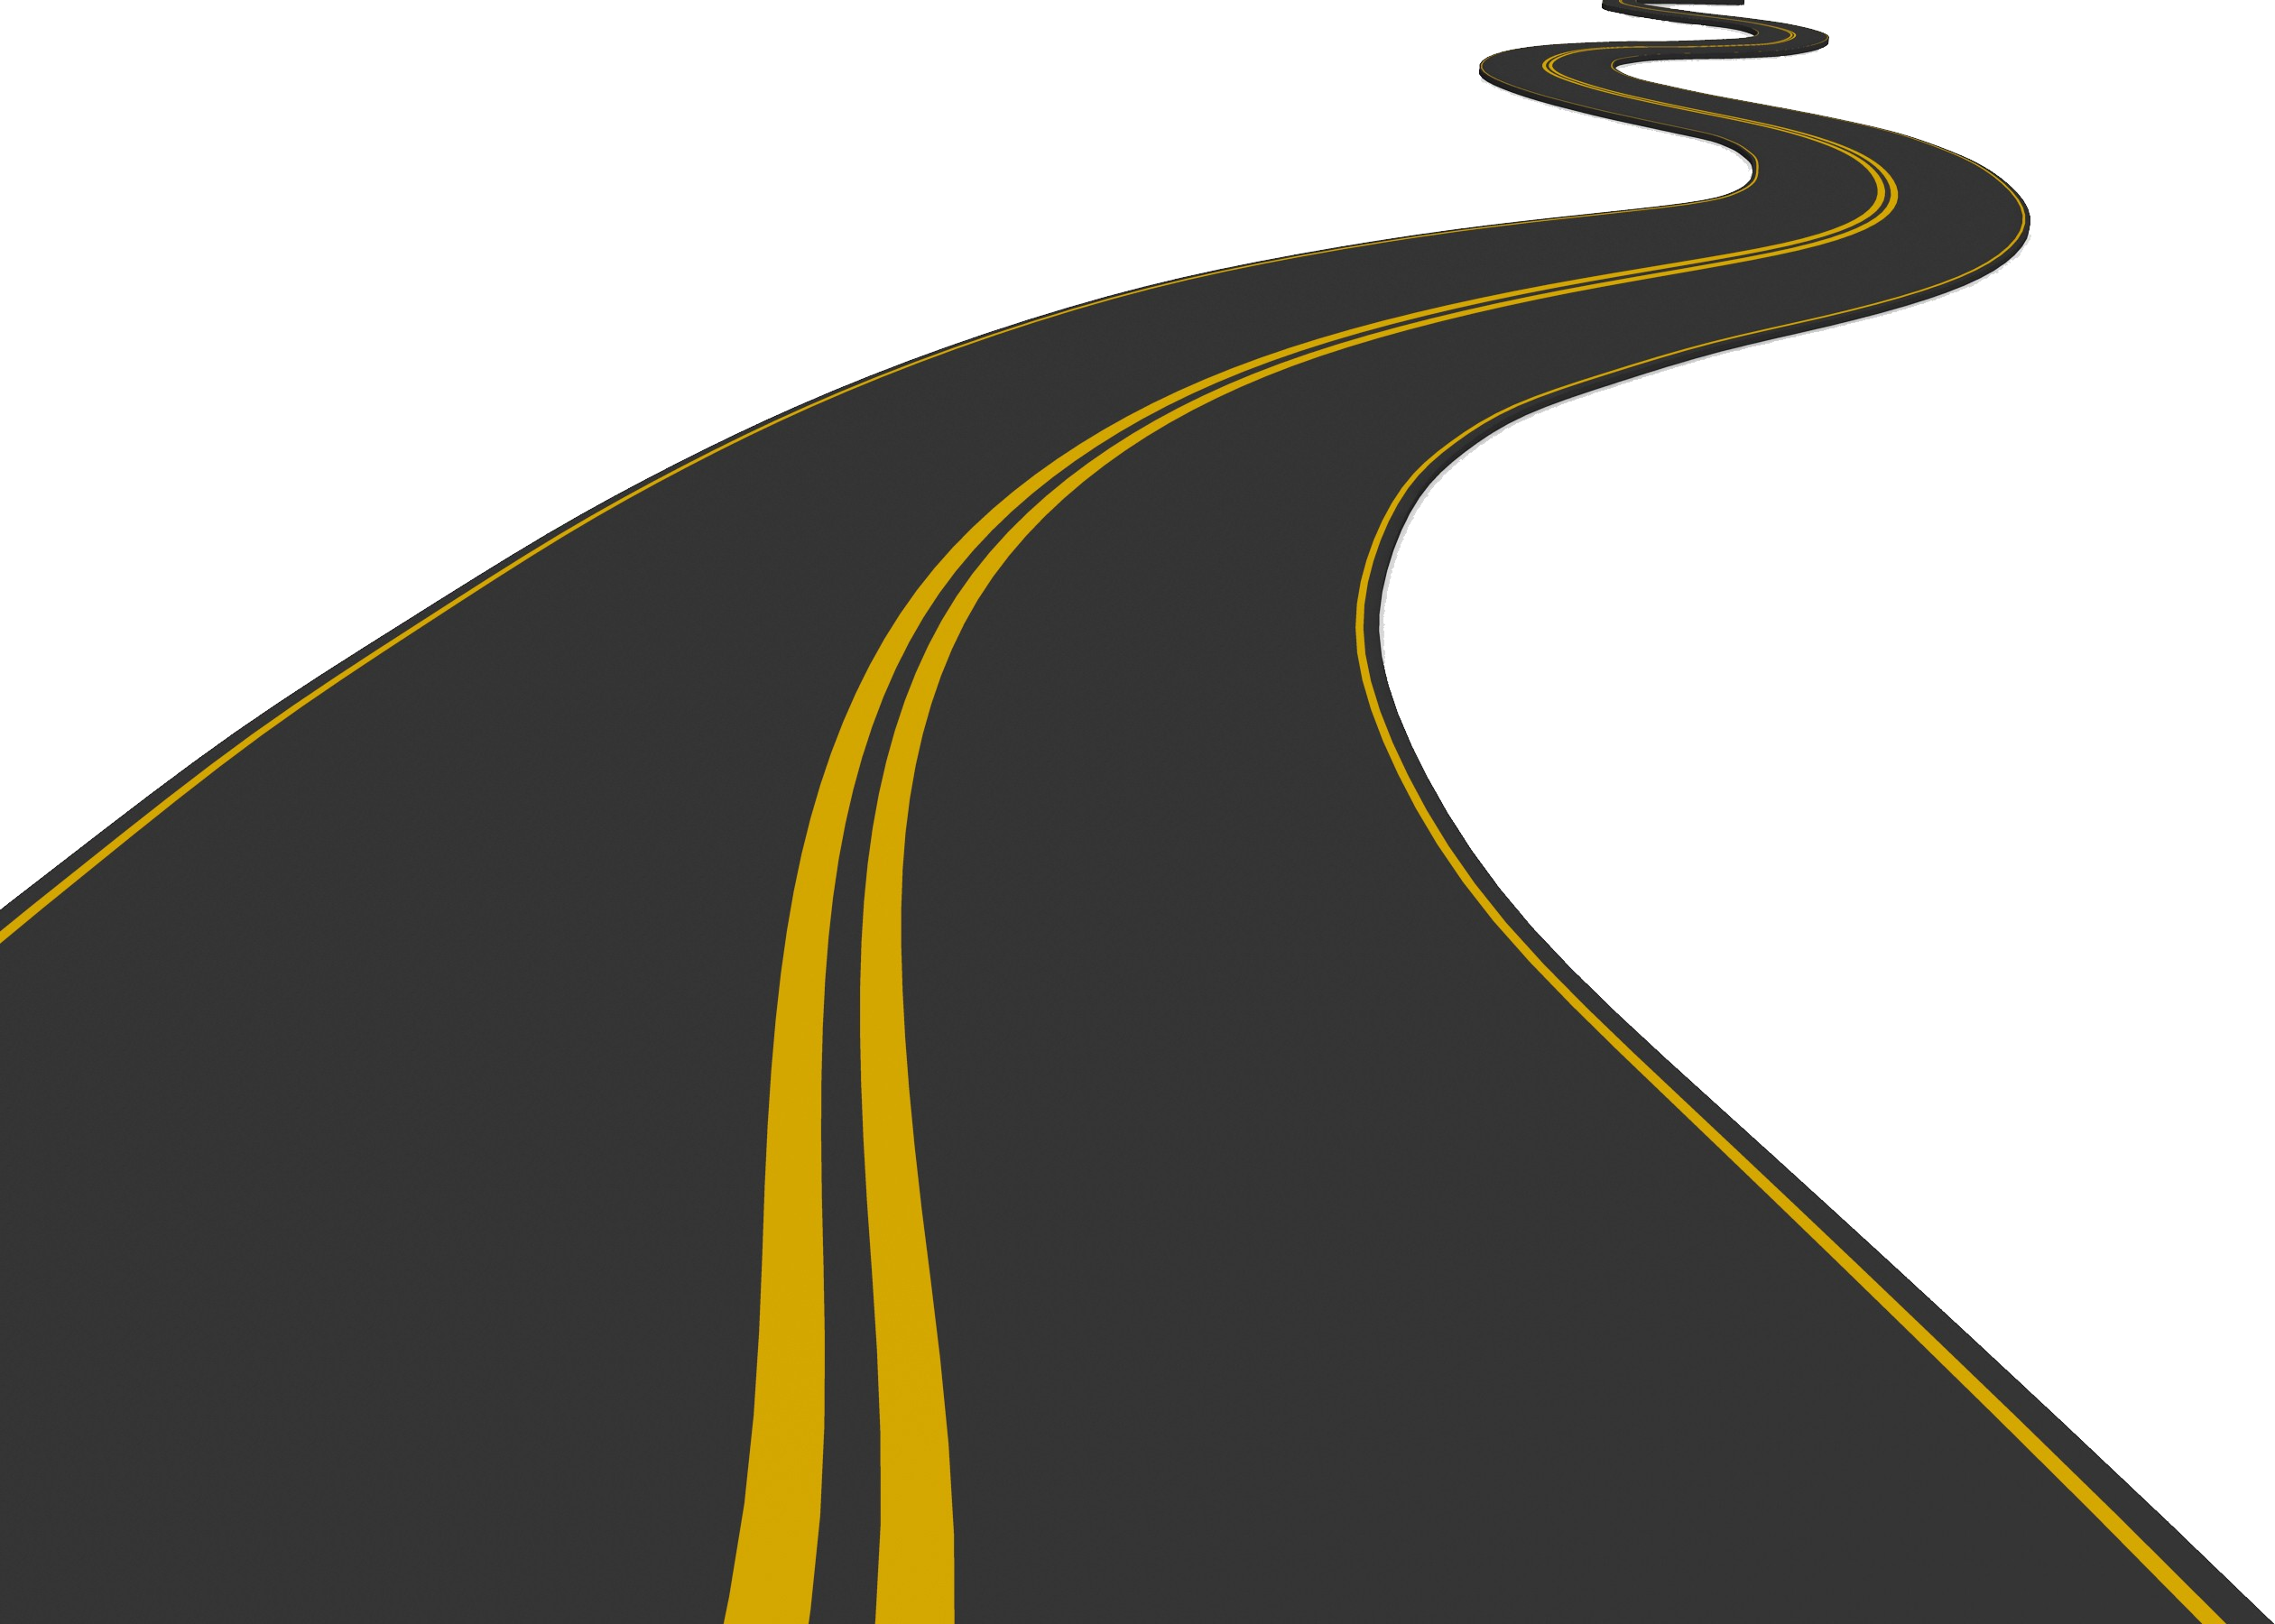 Png image. Road images highway download